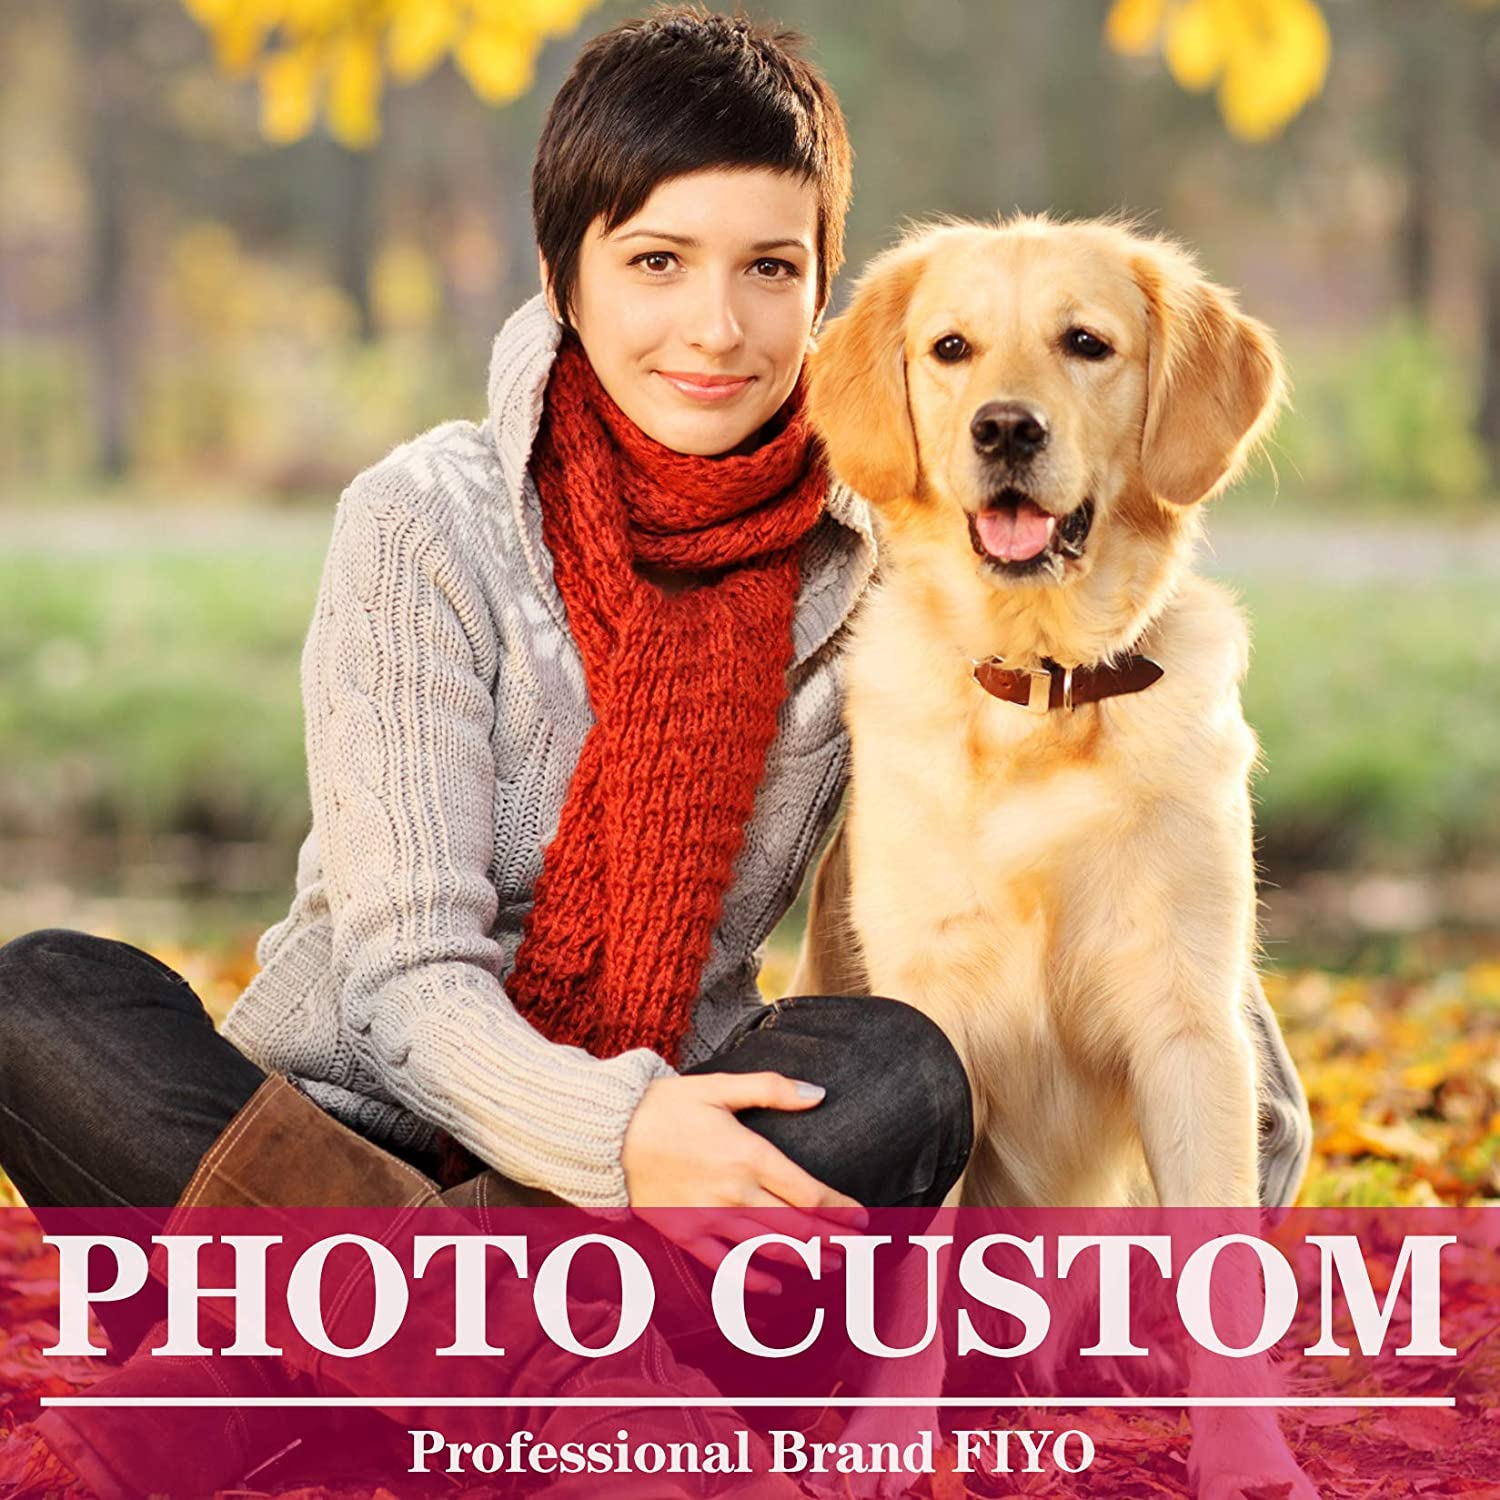 Custom 5D Diamond Painting Kits for Adults with Your Photo DIY,